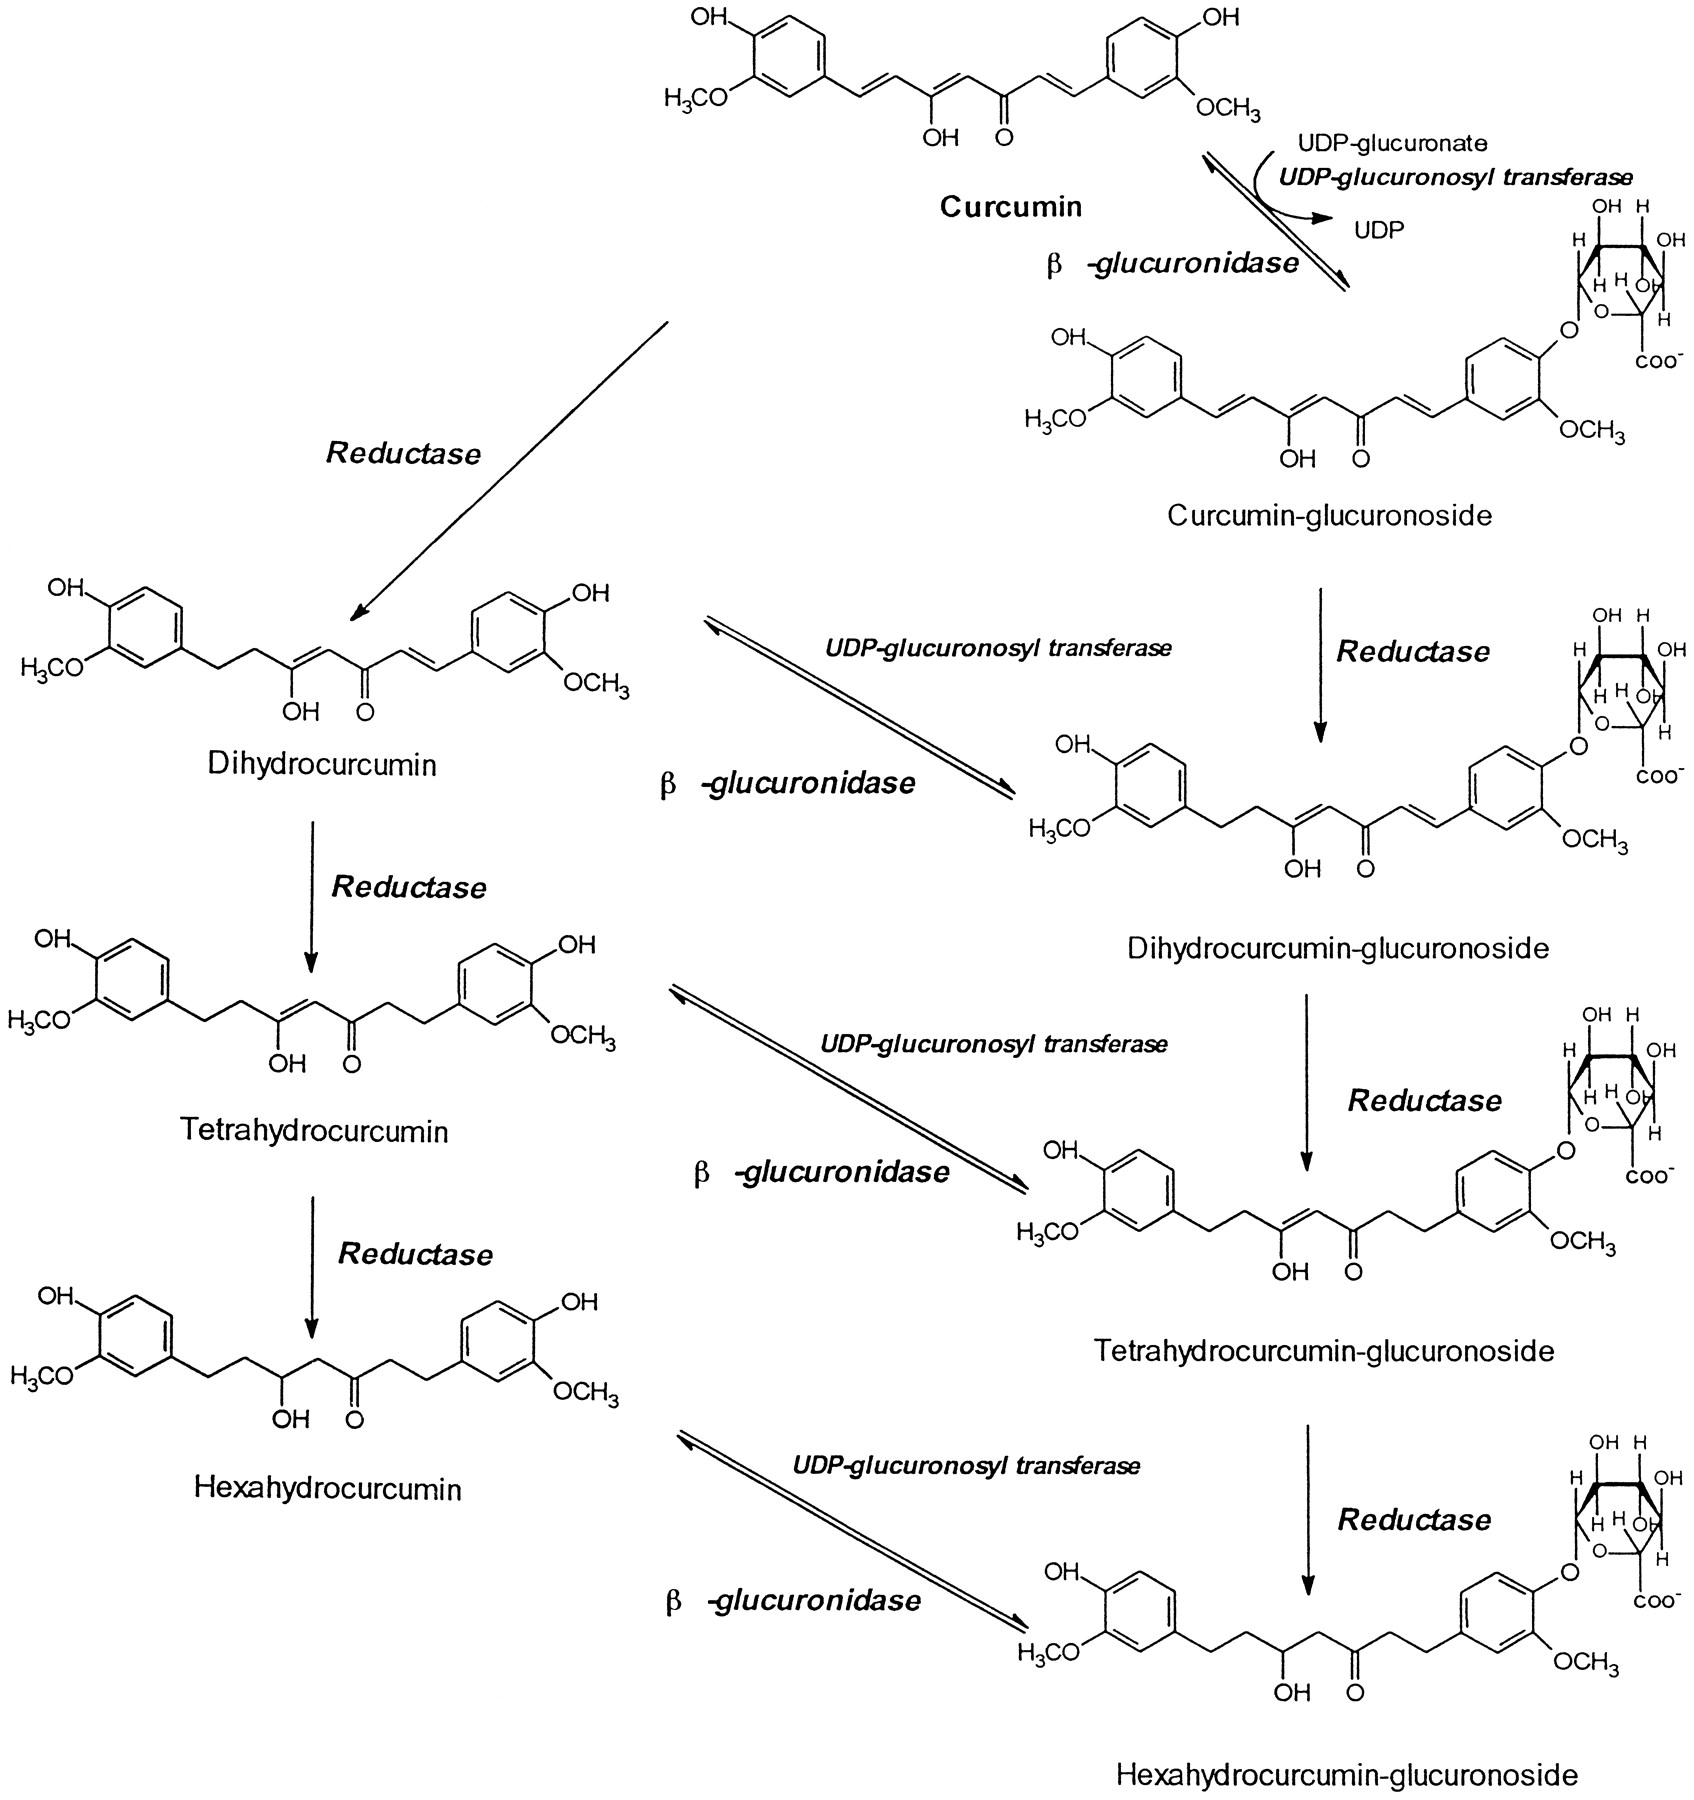 biotransformation of some steroids by aspergillus wentii